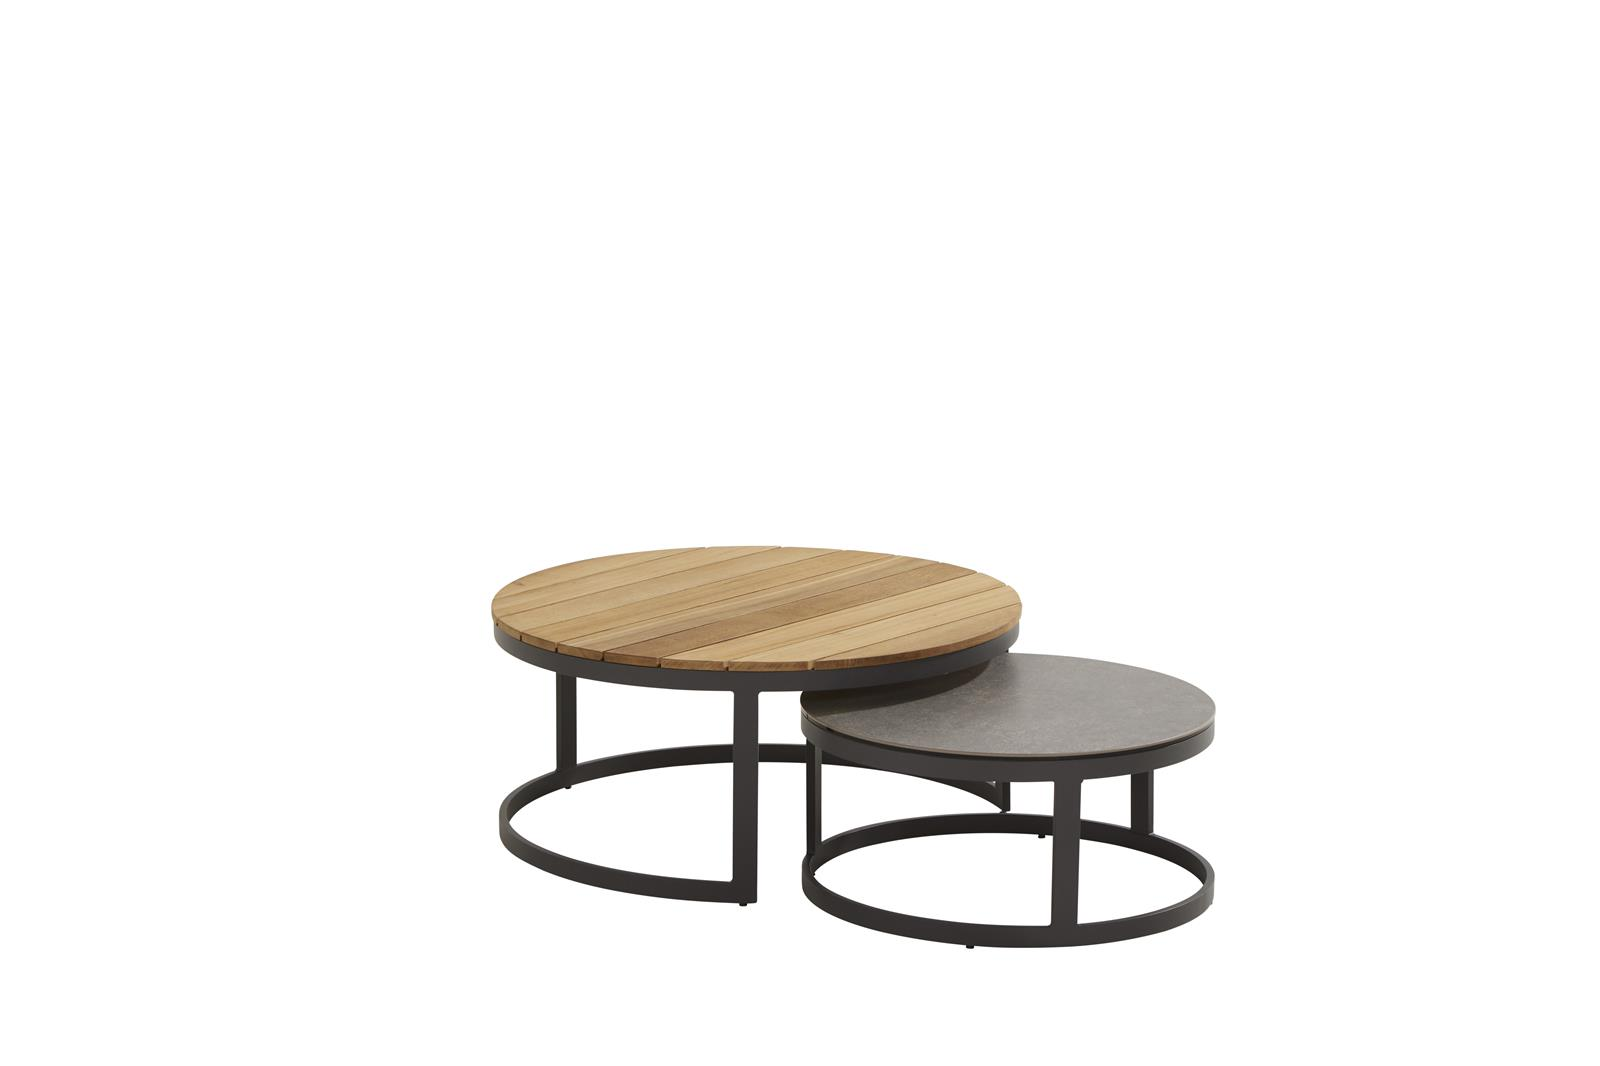 91024_ Stonic set of 2 coffee tables 80 and 60 cm teak and ceramic.jpg